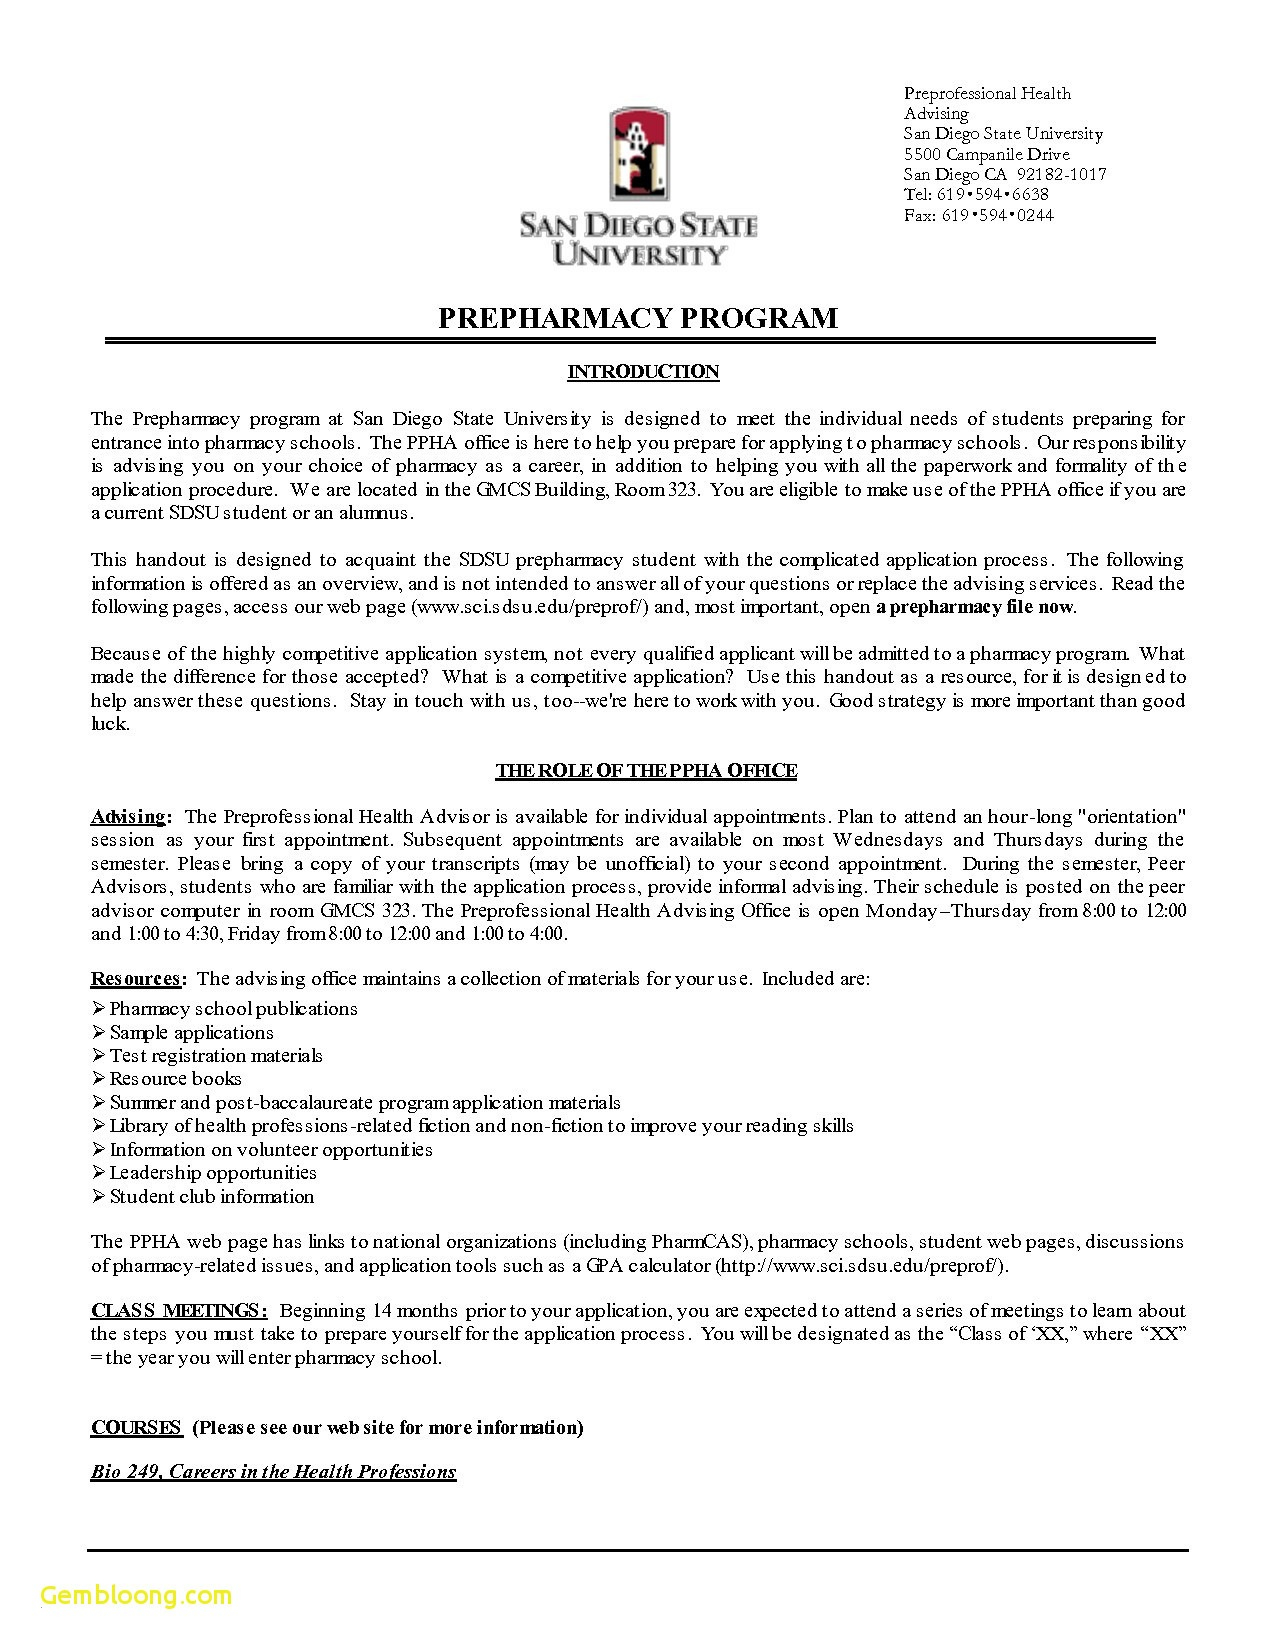 pharmacist resume template word Collection-Pharmacist Resume Templates Inspirational Pharmacist Resume Example Beautiful 25 Pharmacy Resume Templates 13-n